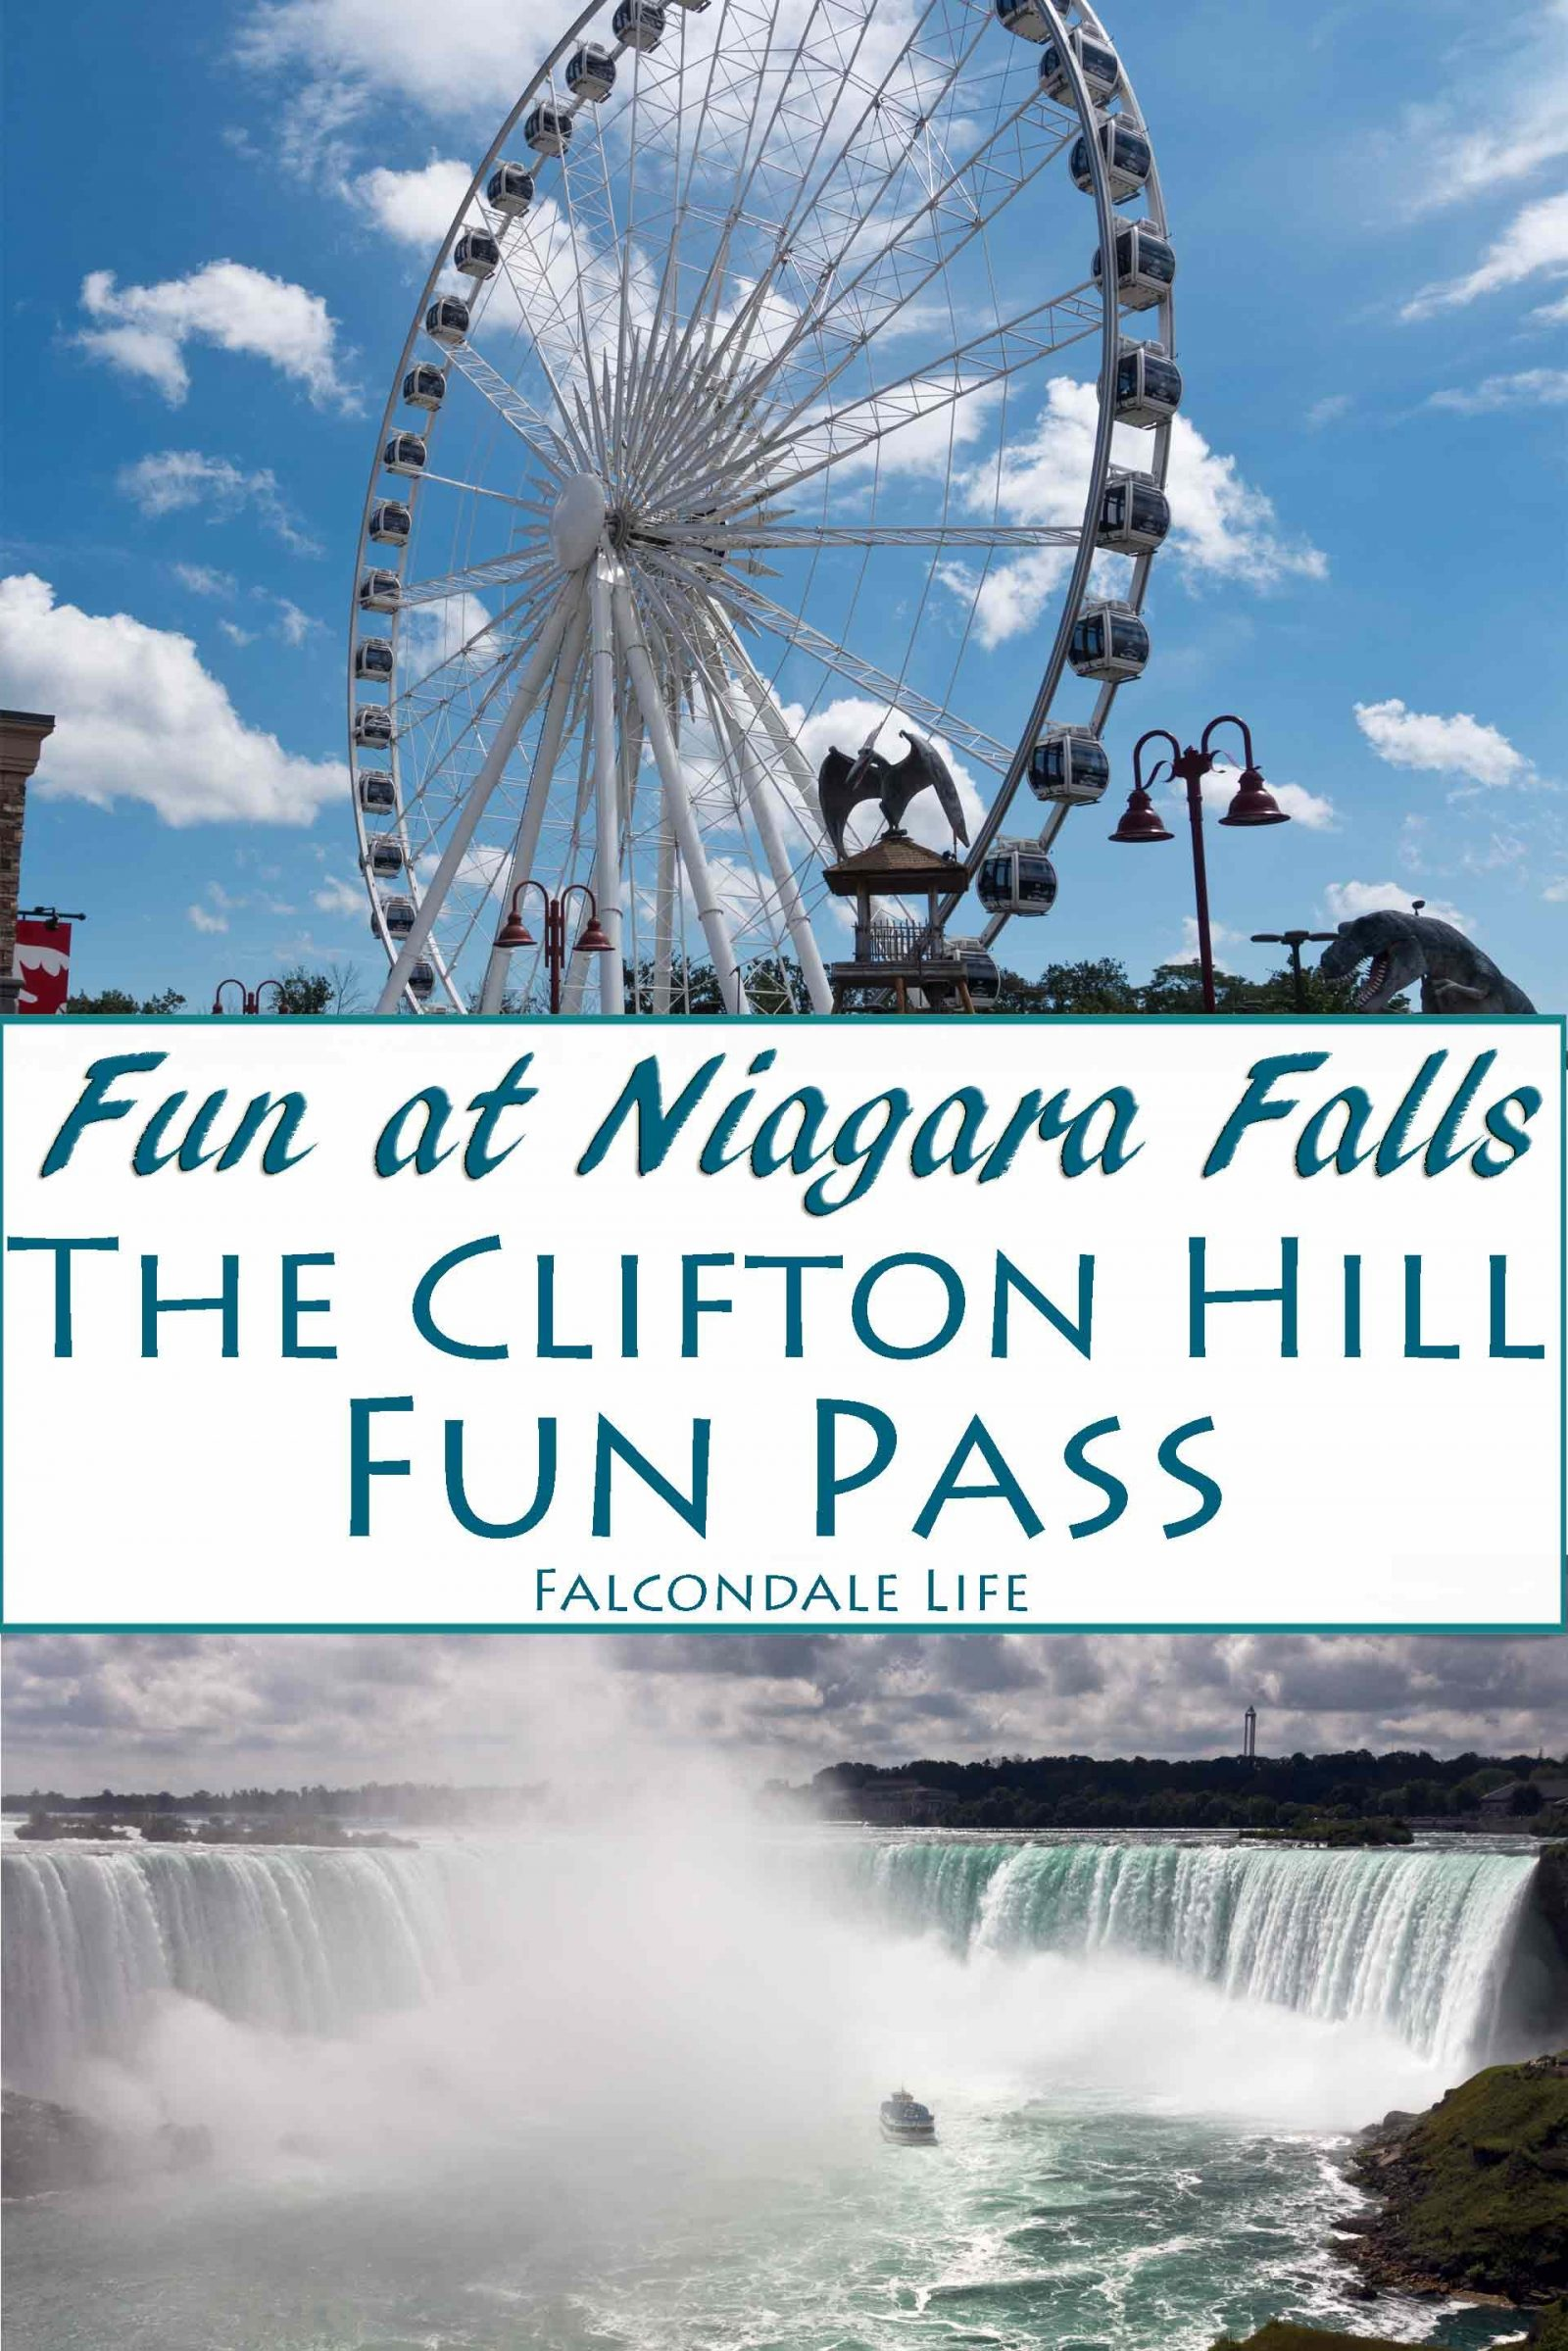 Fun at Niagara Falls with the Clifton Hill Fun Pass